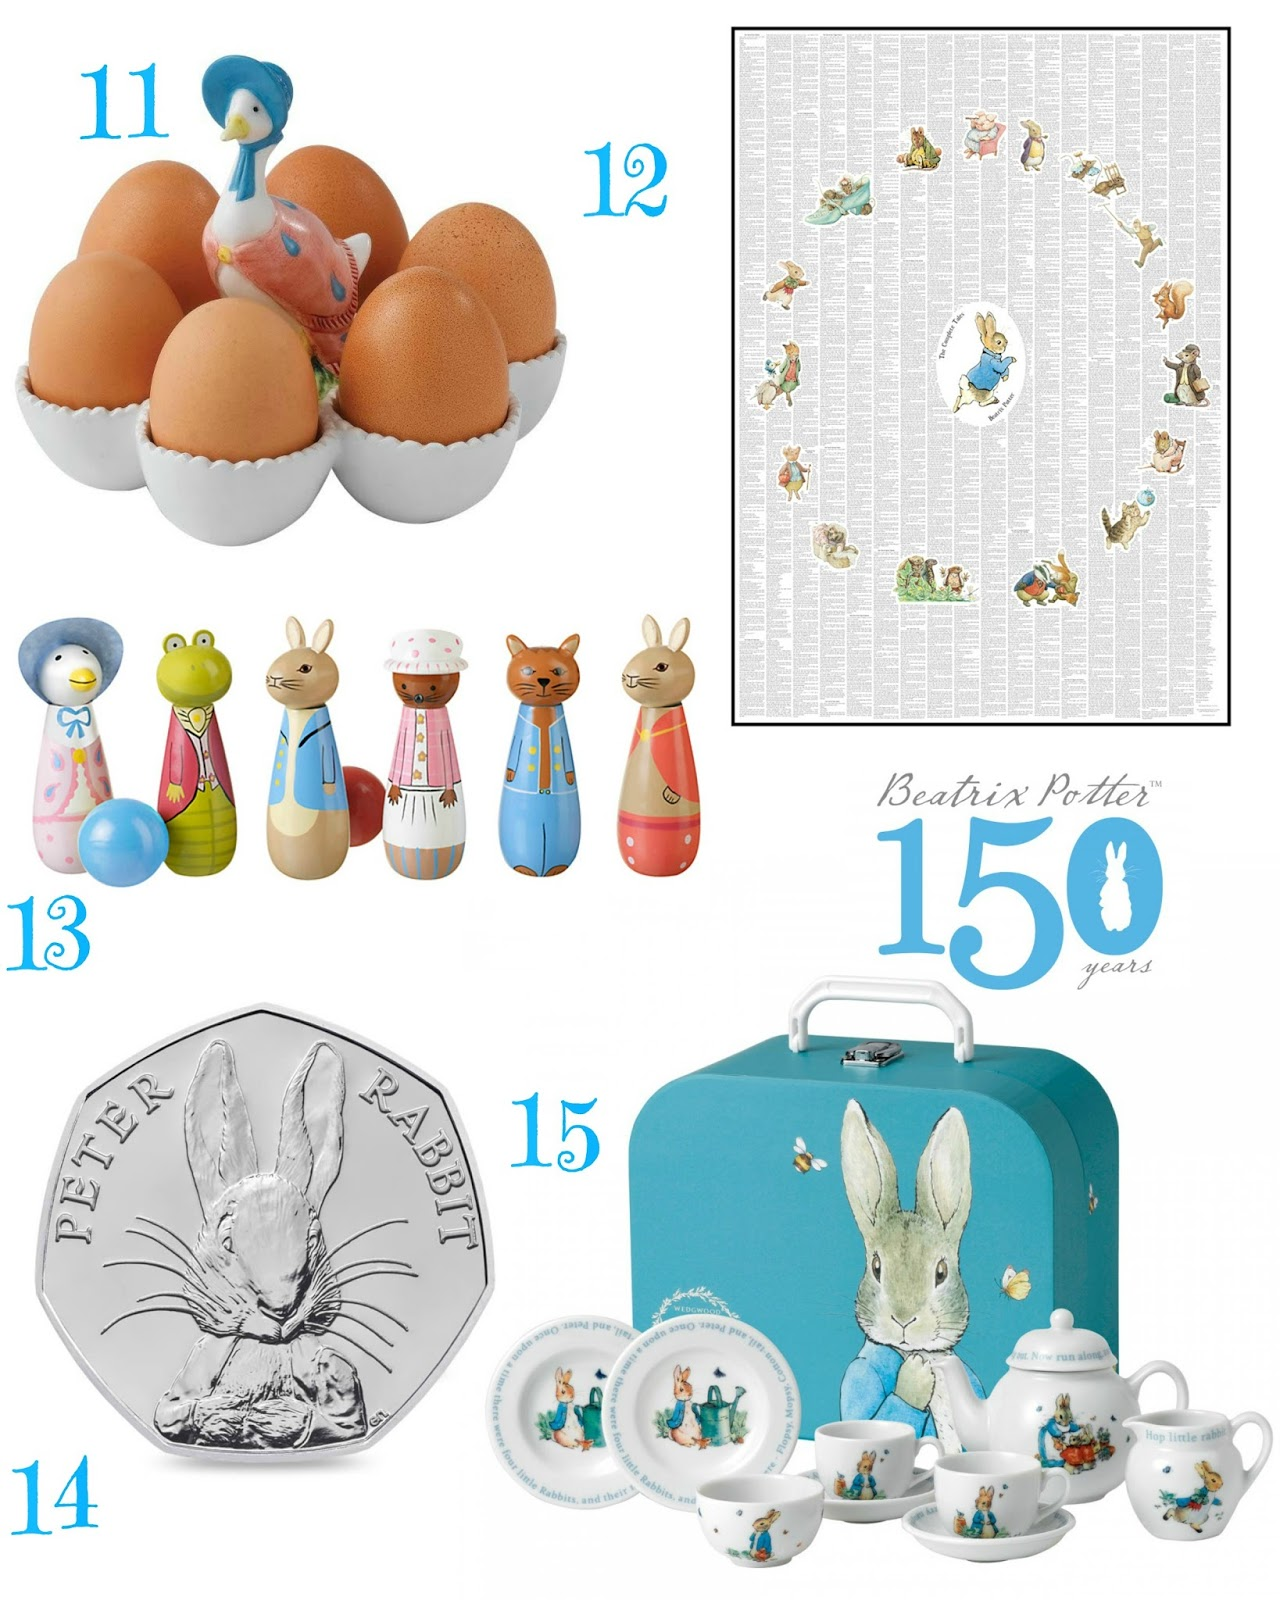 mamasVIB | V. I. BUYS: Hop to it…last minute Easter finds featuring Peter Rabbit and Beatrix Potter